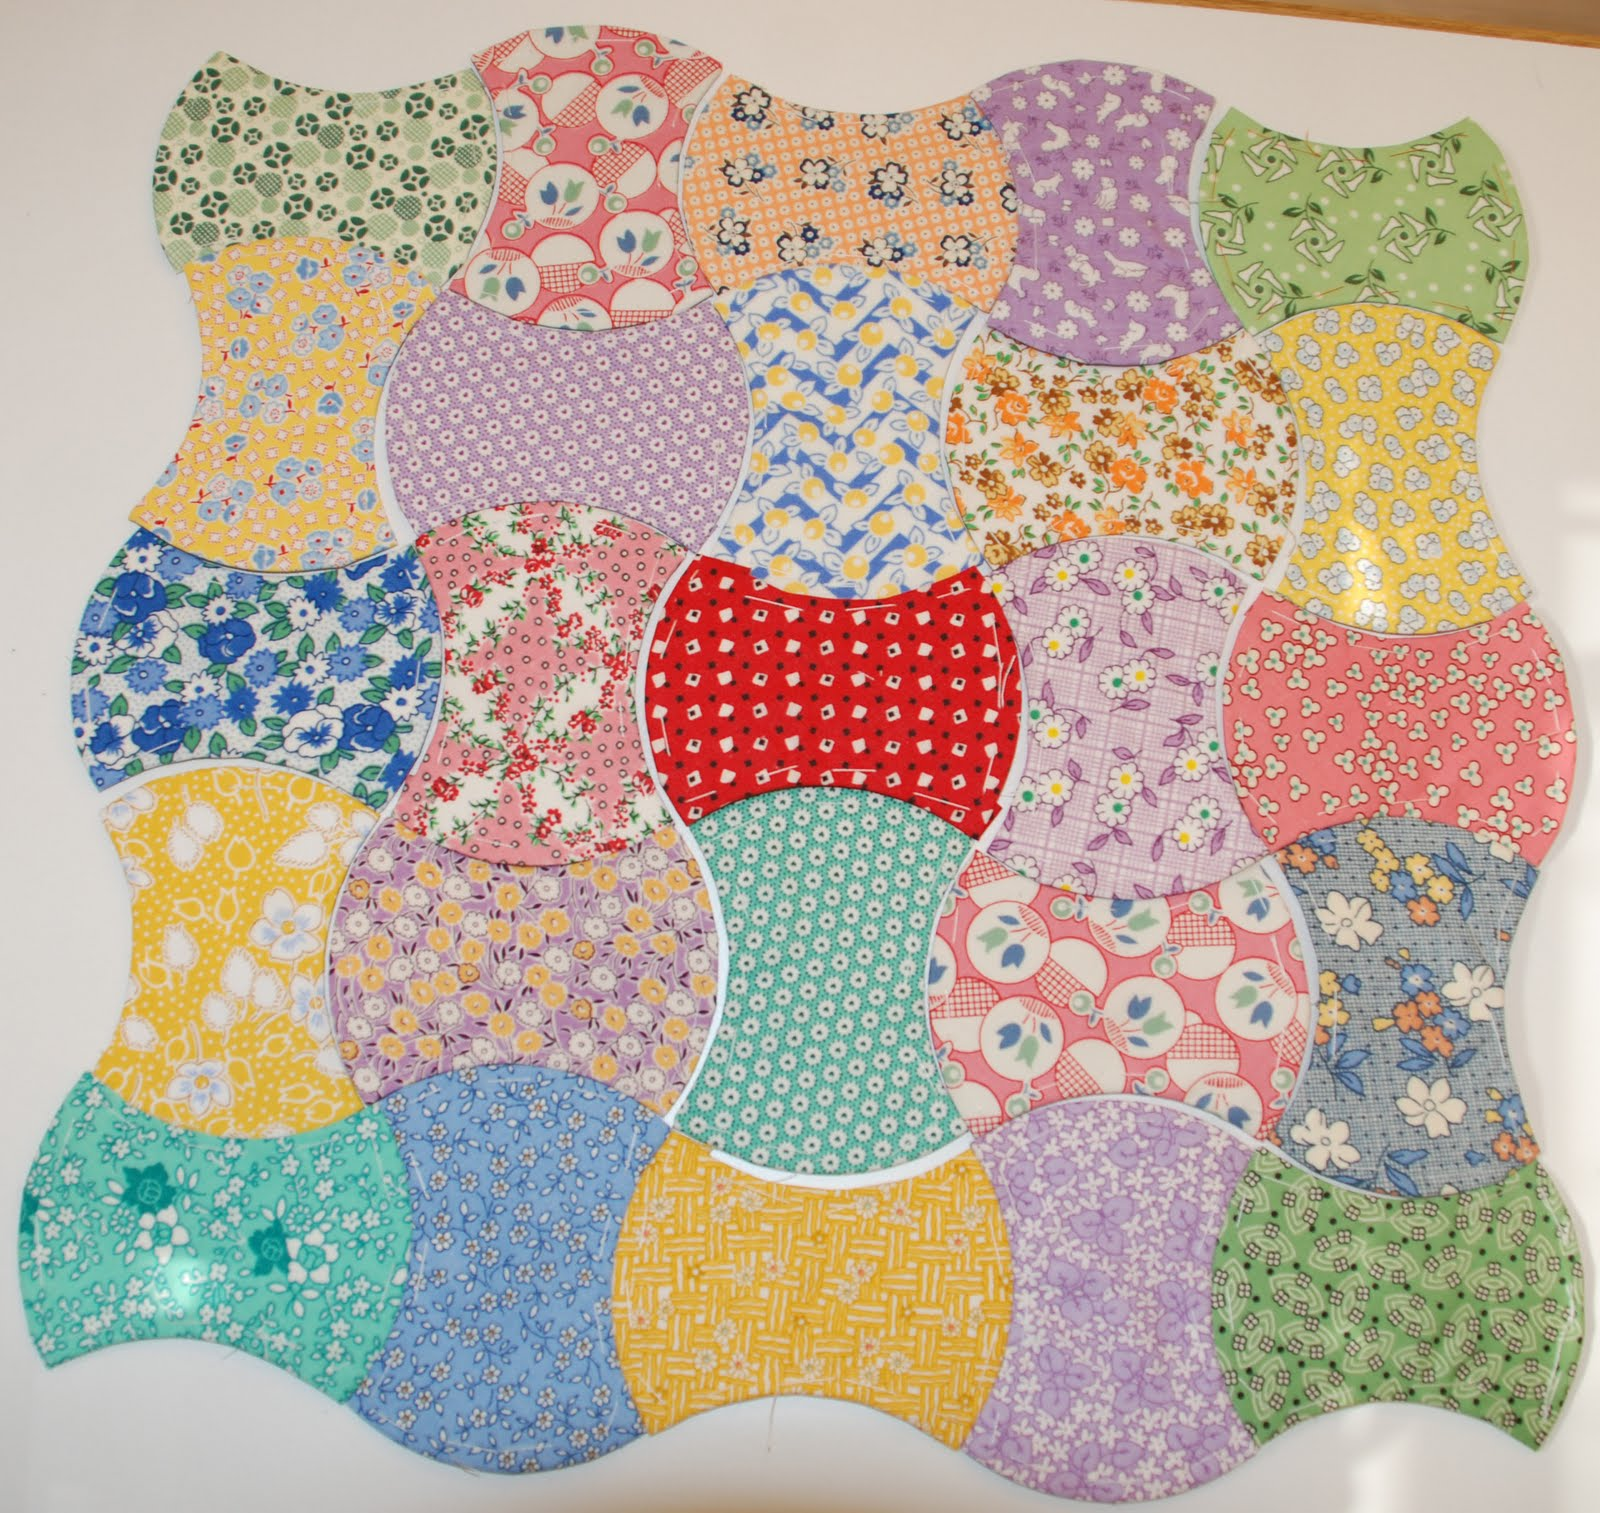 Spun sugar quilts tutorial english paper piecing applecore shape tutorial english paper piecing applecore shape part 1 pronofoot35fo Image collections